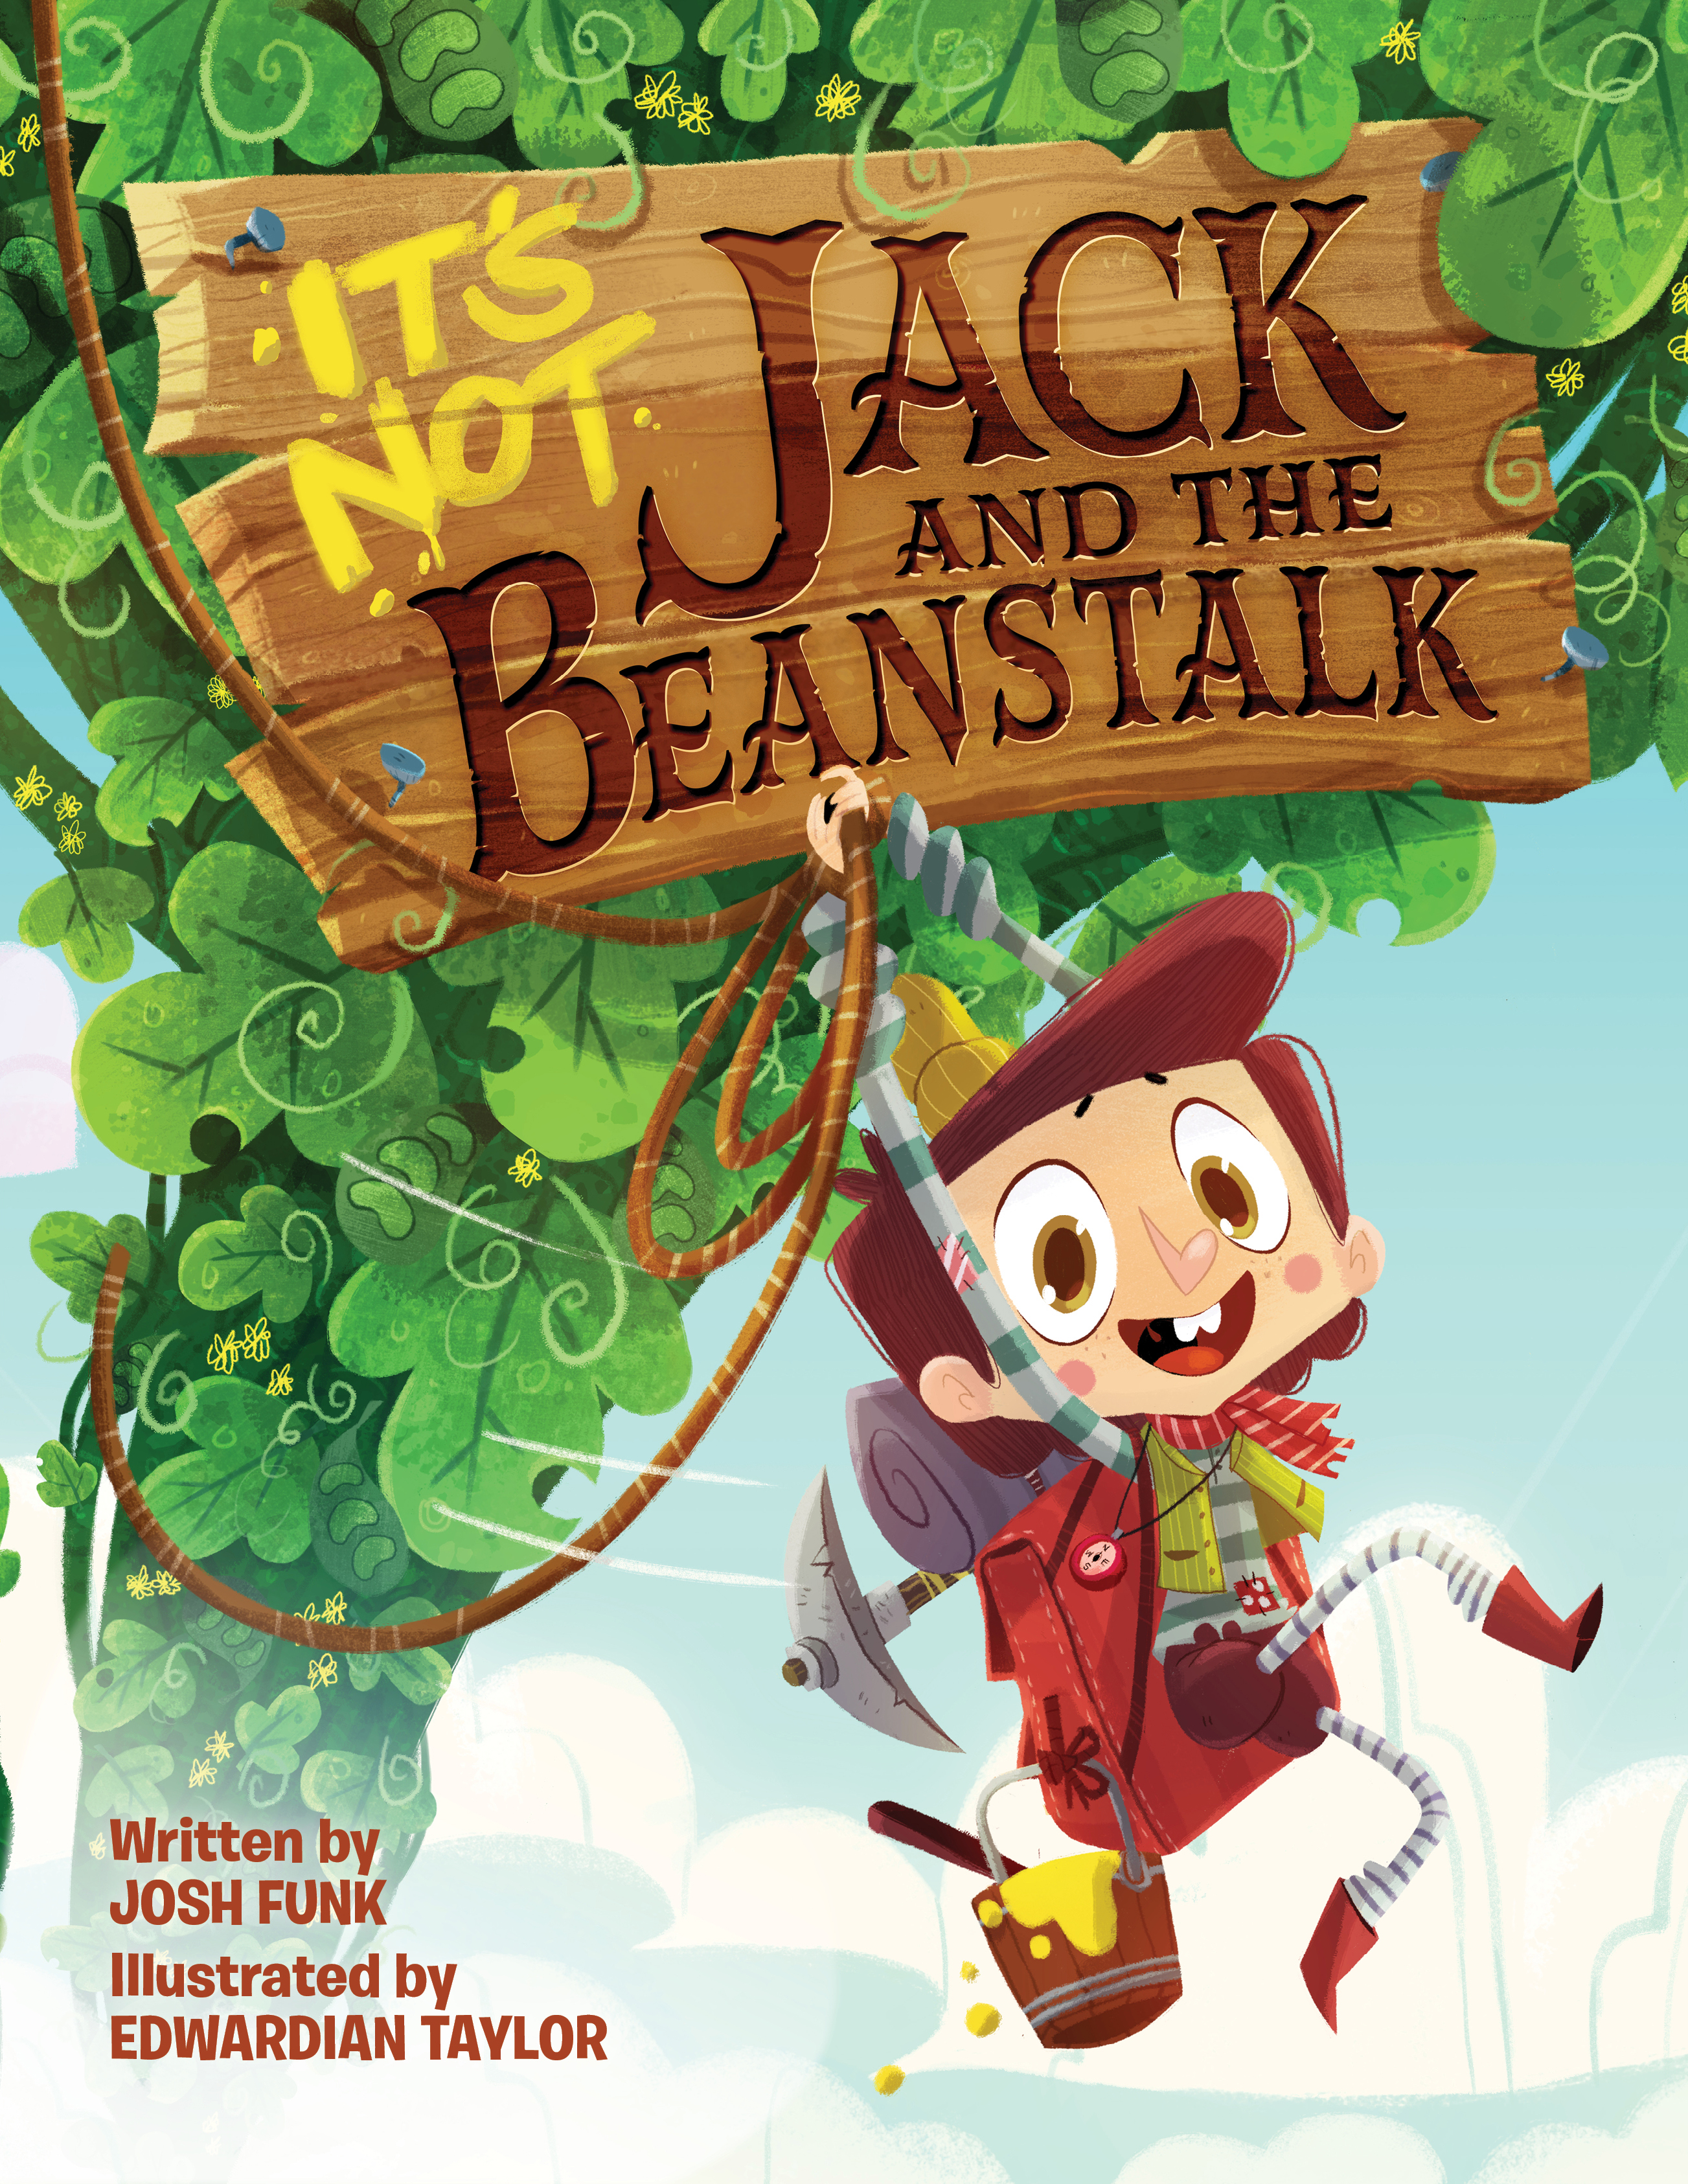 It's Not Jack and the Beanstalk by Josh Funk and illustrated by Edwardian Taylor